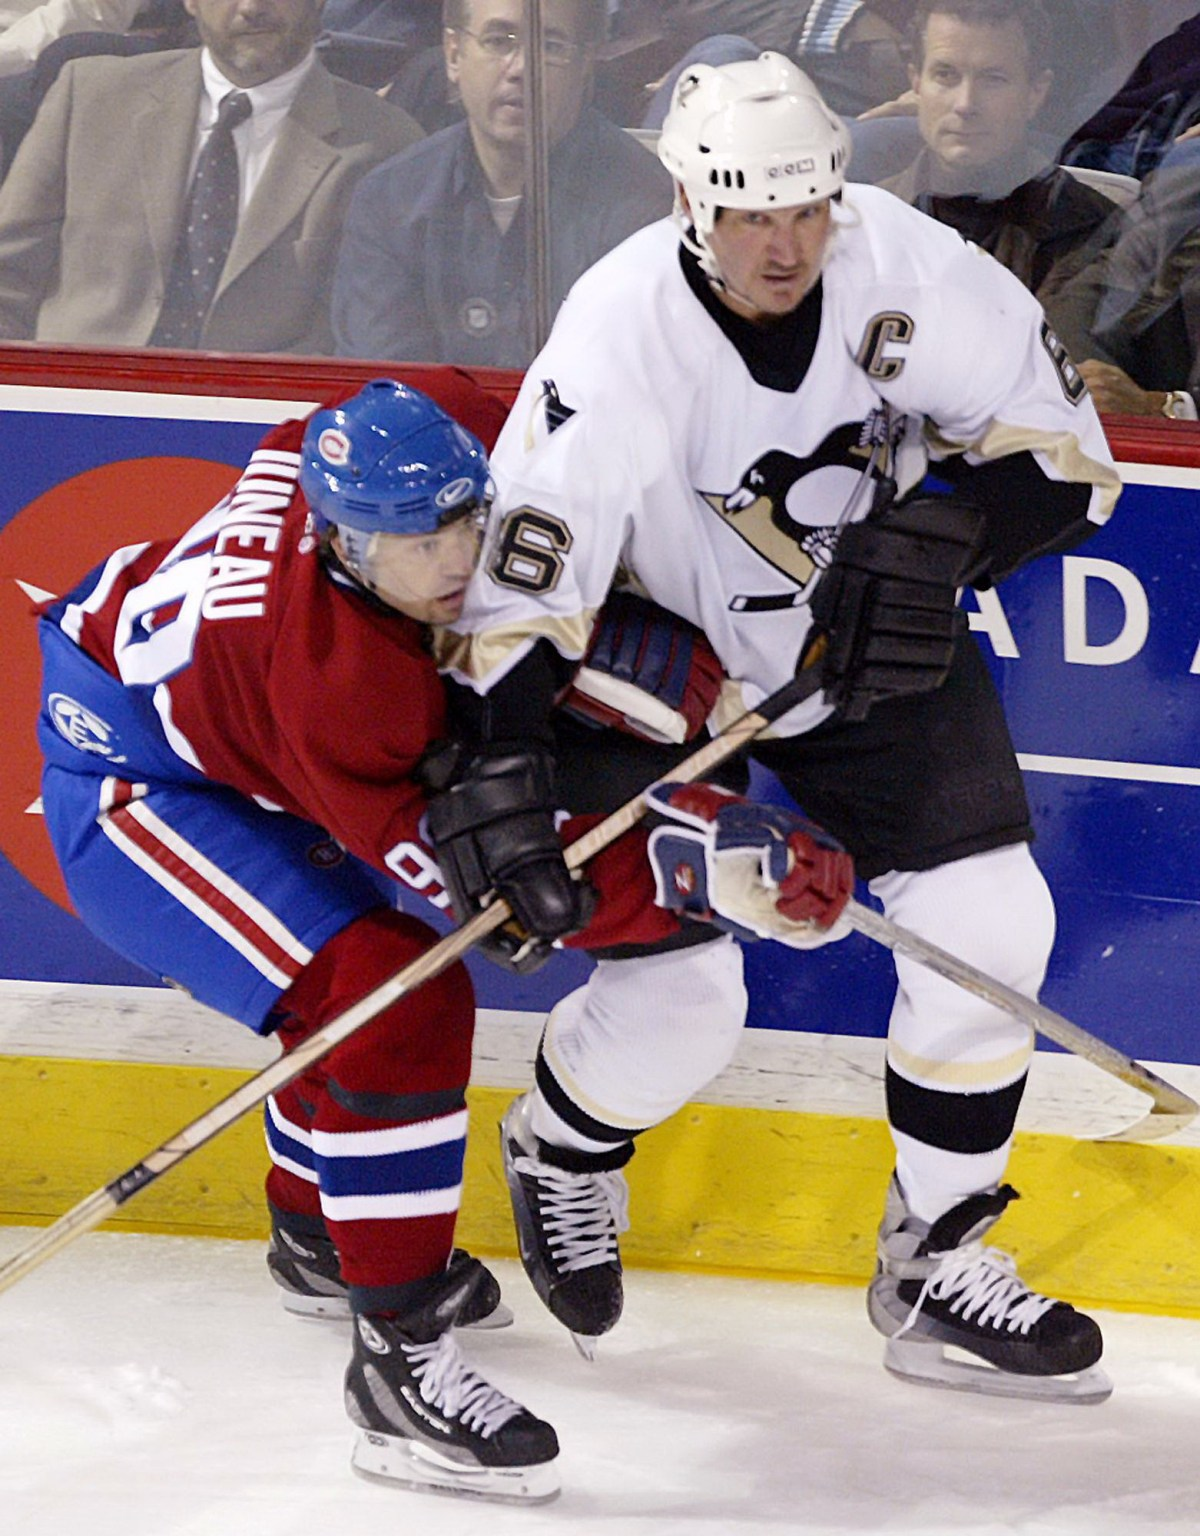 Canadiens center Joe Juneau tries to fight off Penguins center Mario Lemieux in Montreal on Thursday, Oct. 16, 2003. (Andre Pichette/Associated Press)